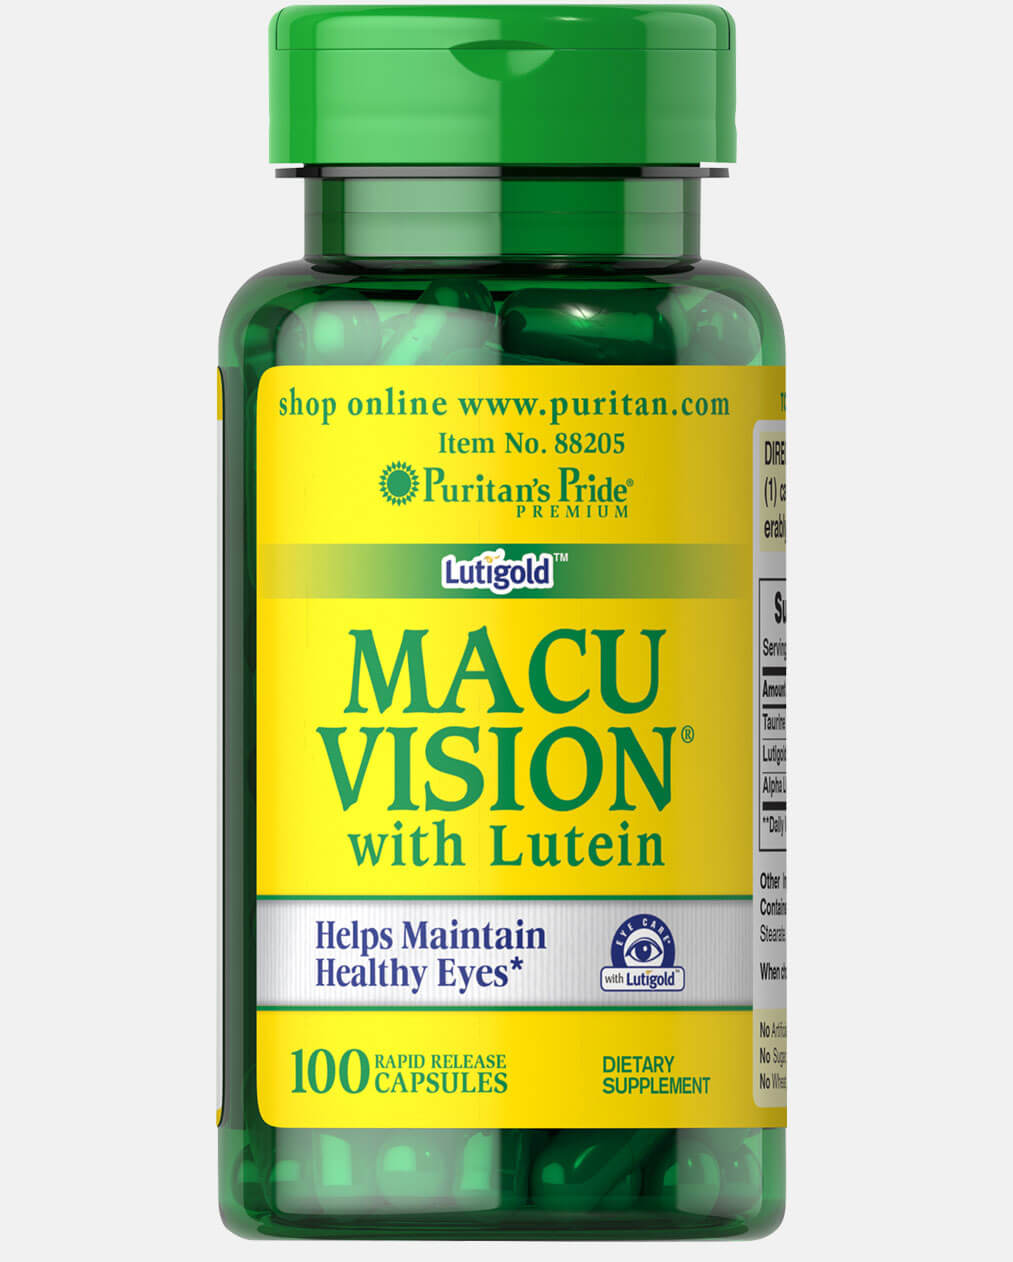 Macuvision® with Alpha Lipoic Acid and Lutein